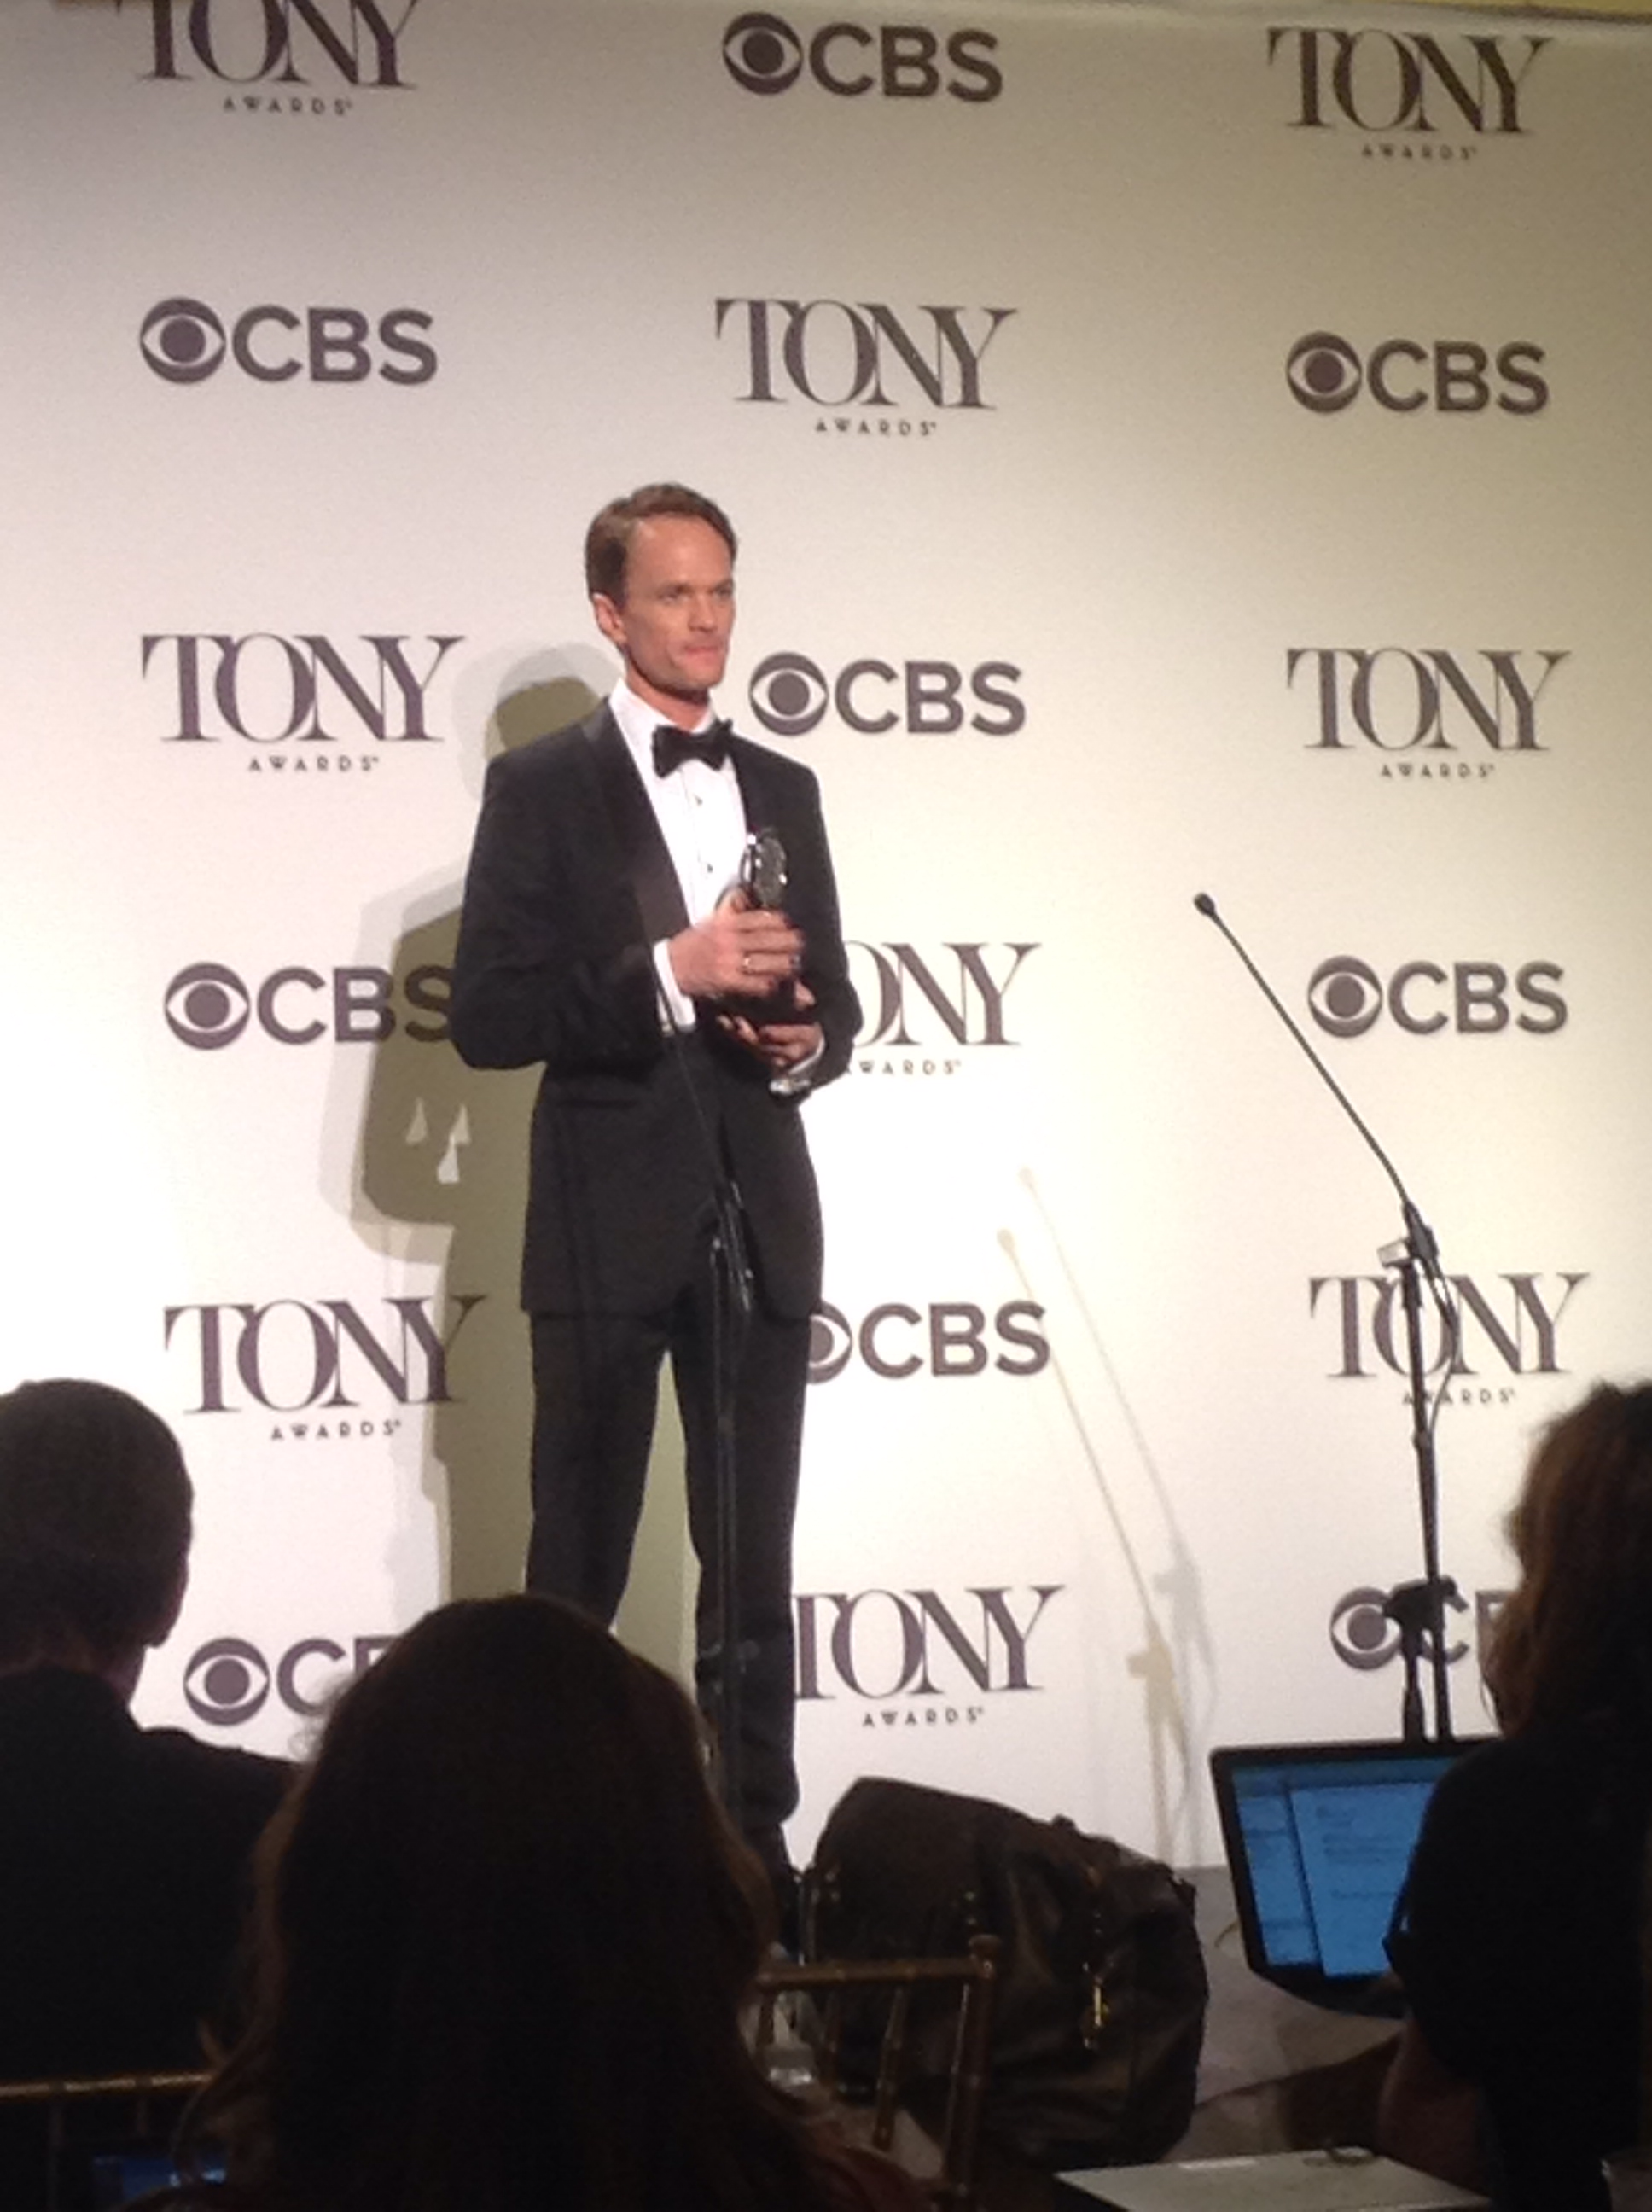 Neil Patrick Harris winning the 2014 Tony Award.